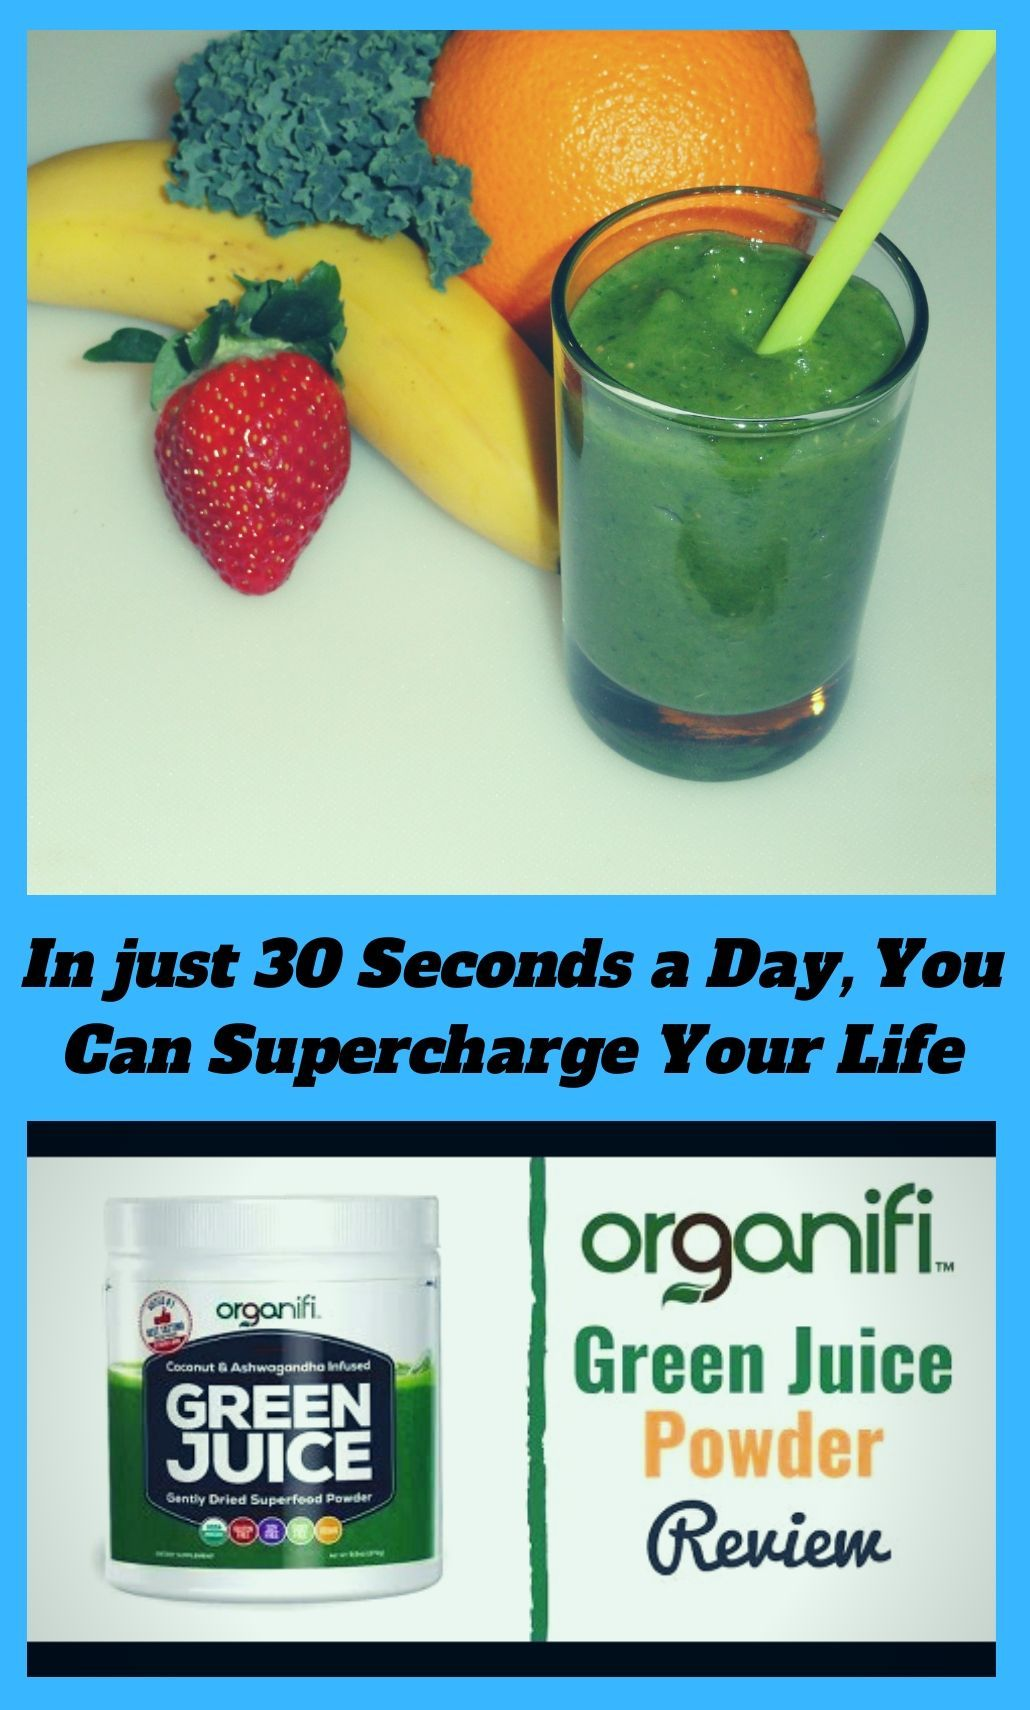 #organifi In just 30 Seconds a Day, You Can Supercharge Your Life, Restore Glowing Good Health and F...